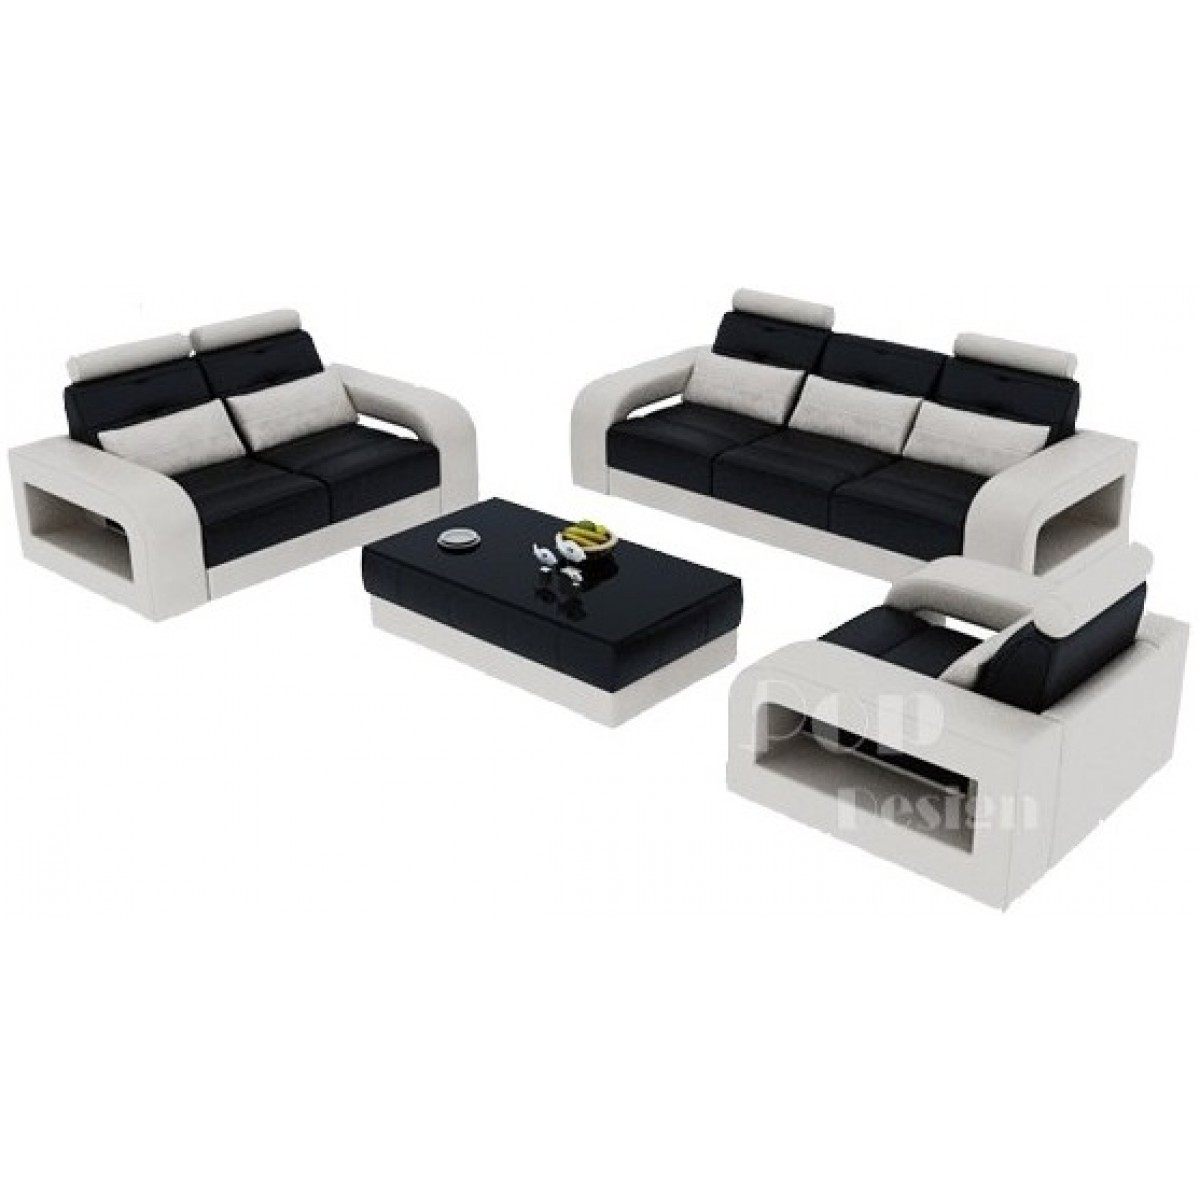 salon set canap s personnalisable en cuir design salerno. Black Bedroom Furniture Sets. Home Design Ideas